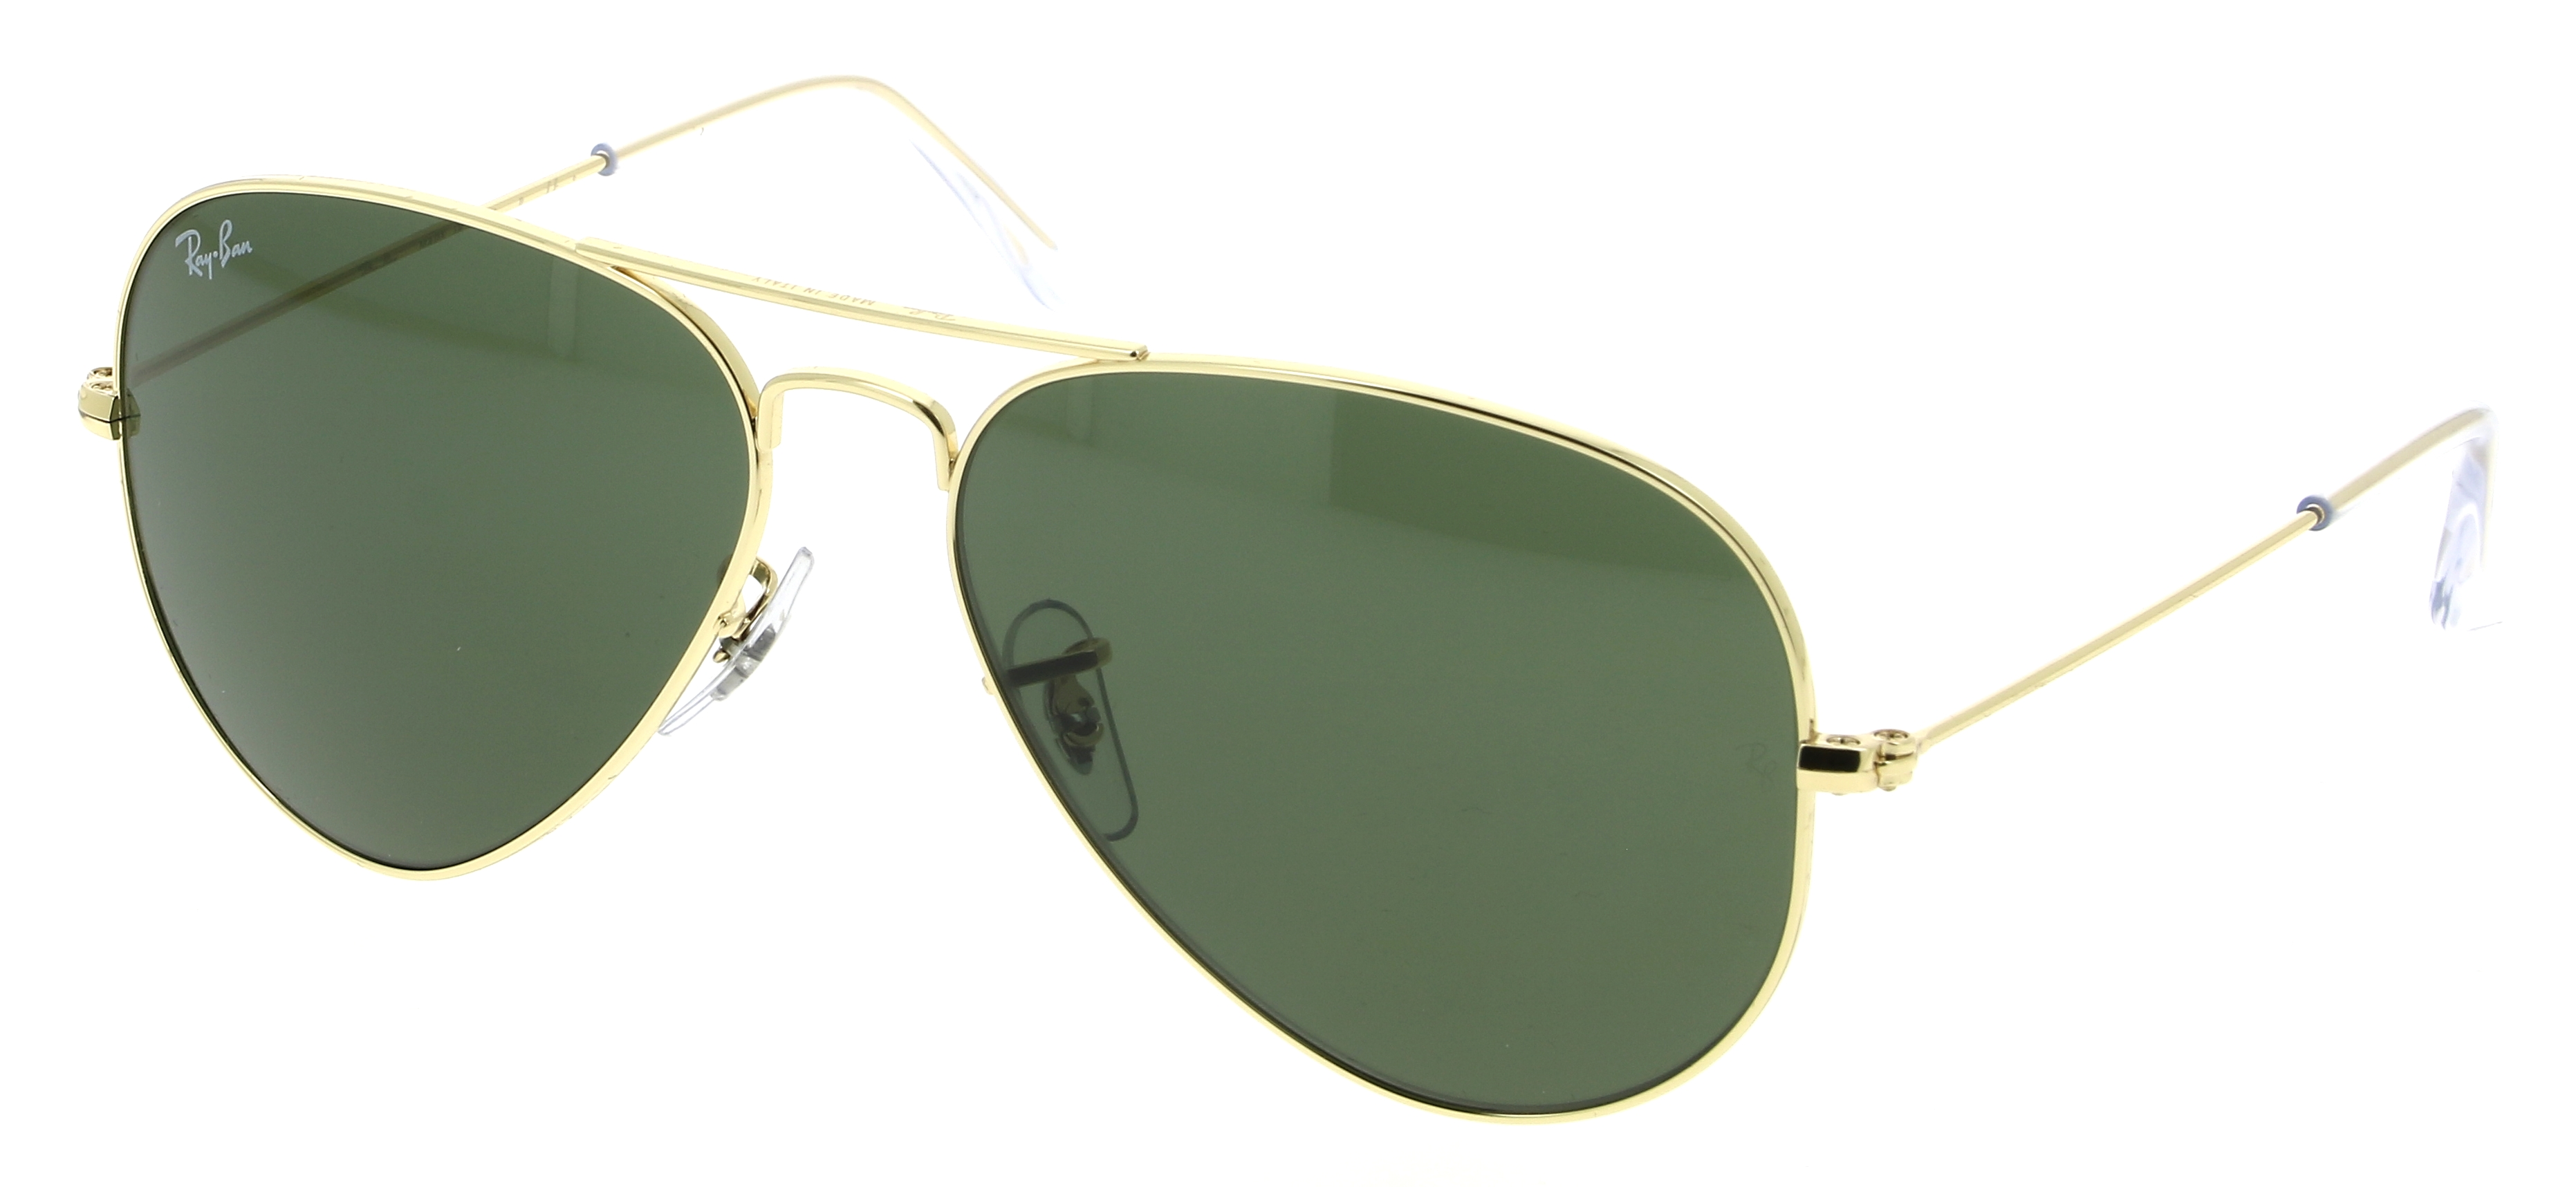 556909fd54 Gafas Ray Ban Aviator 3025 Colombia | www.tapdance.org